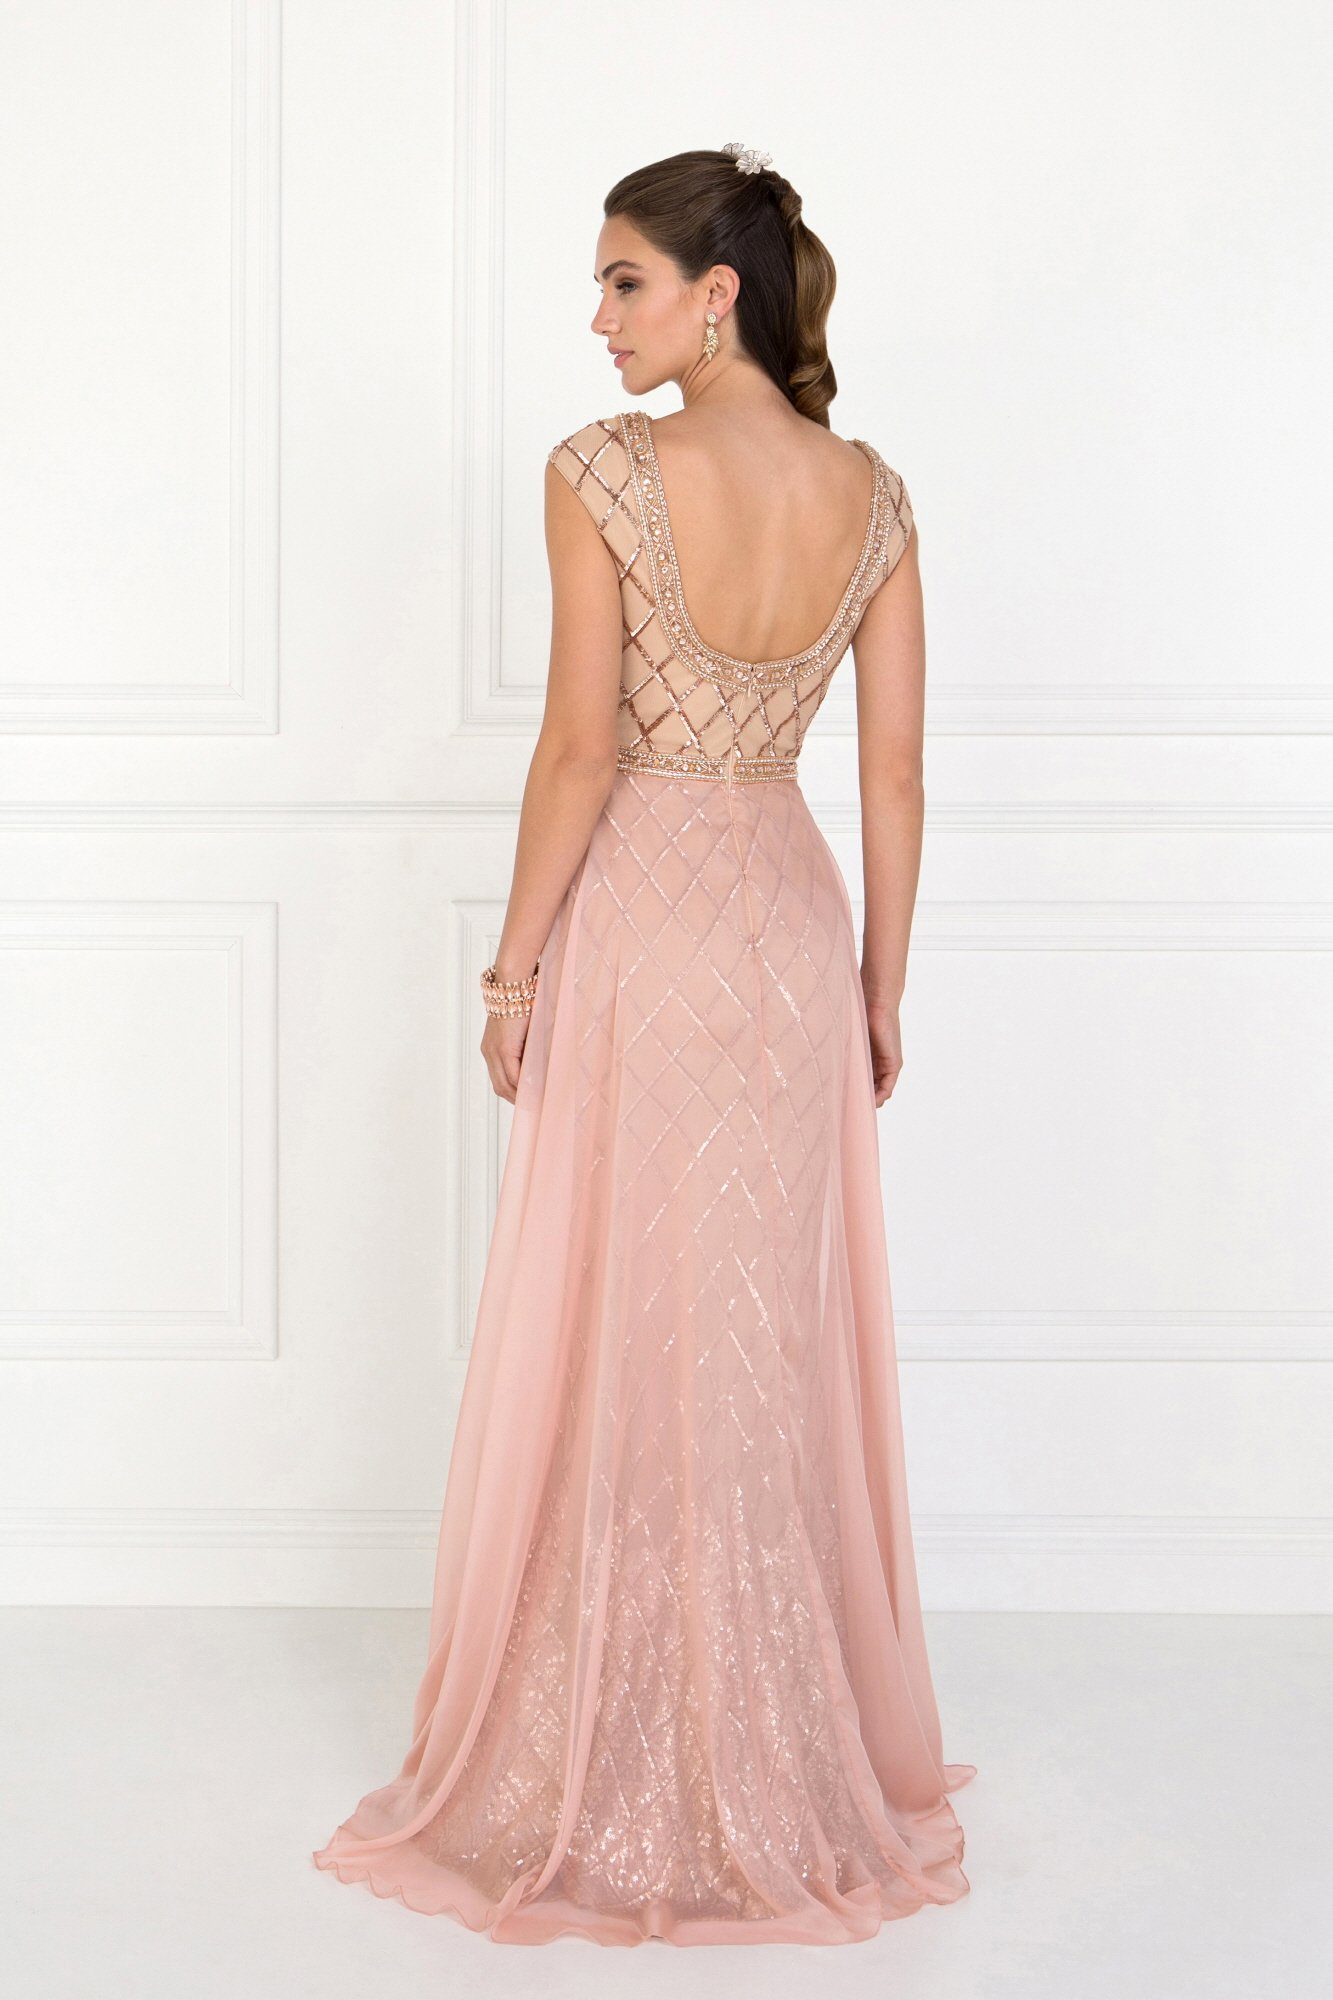 Sequin evening gown Gls 1577 – Simply Fab Dress